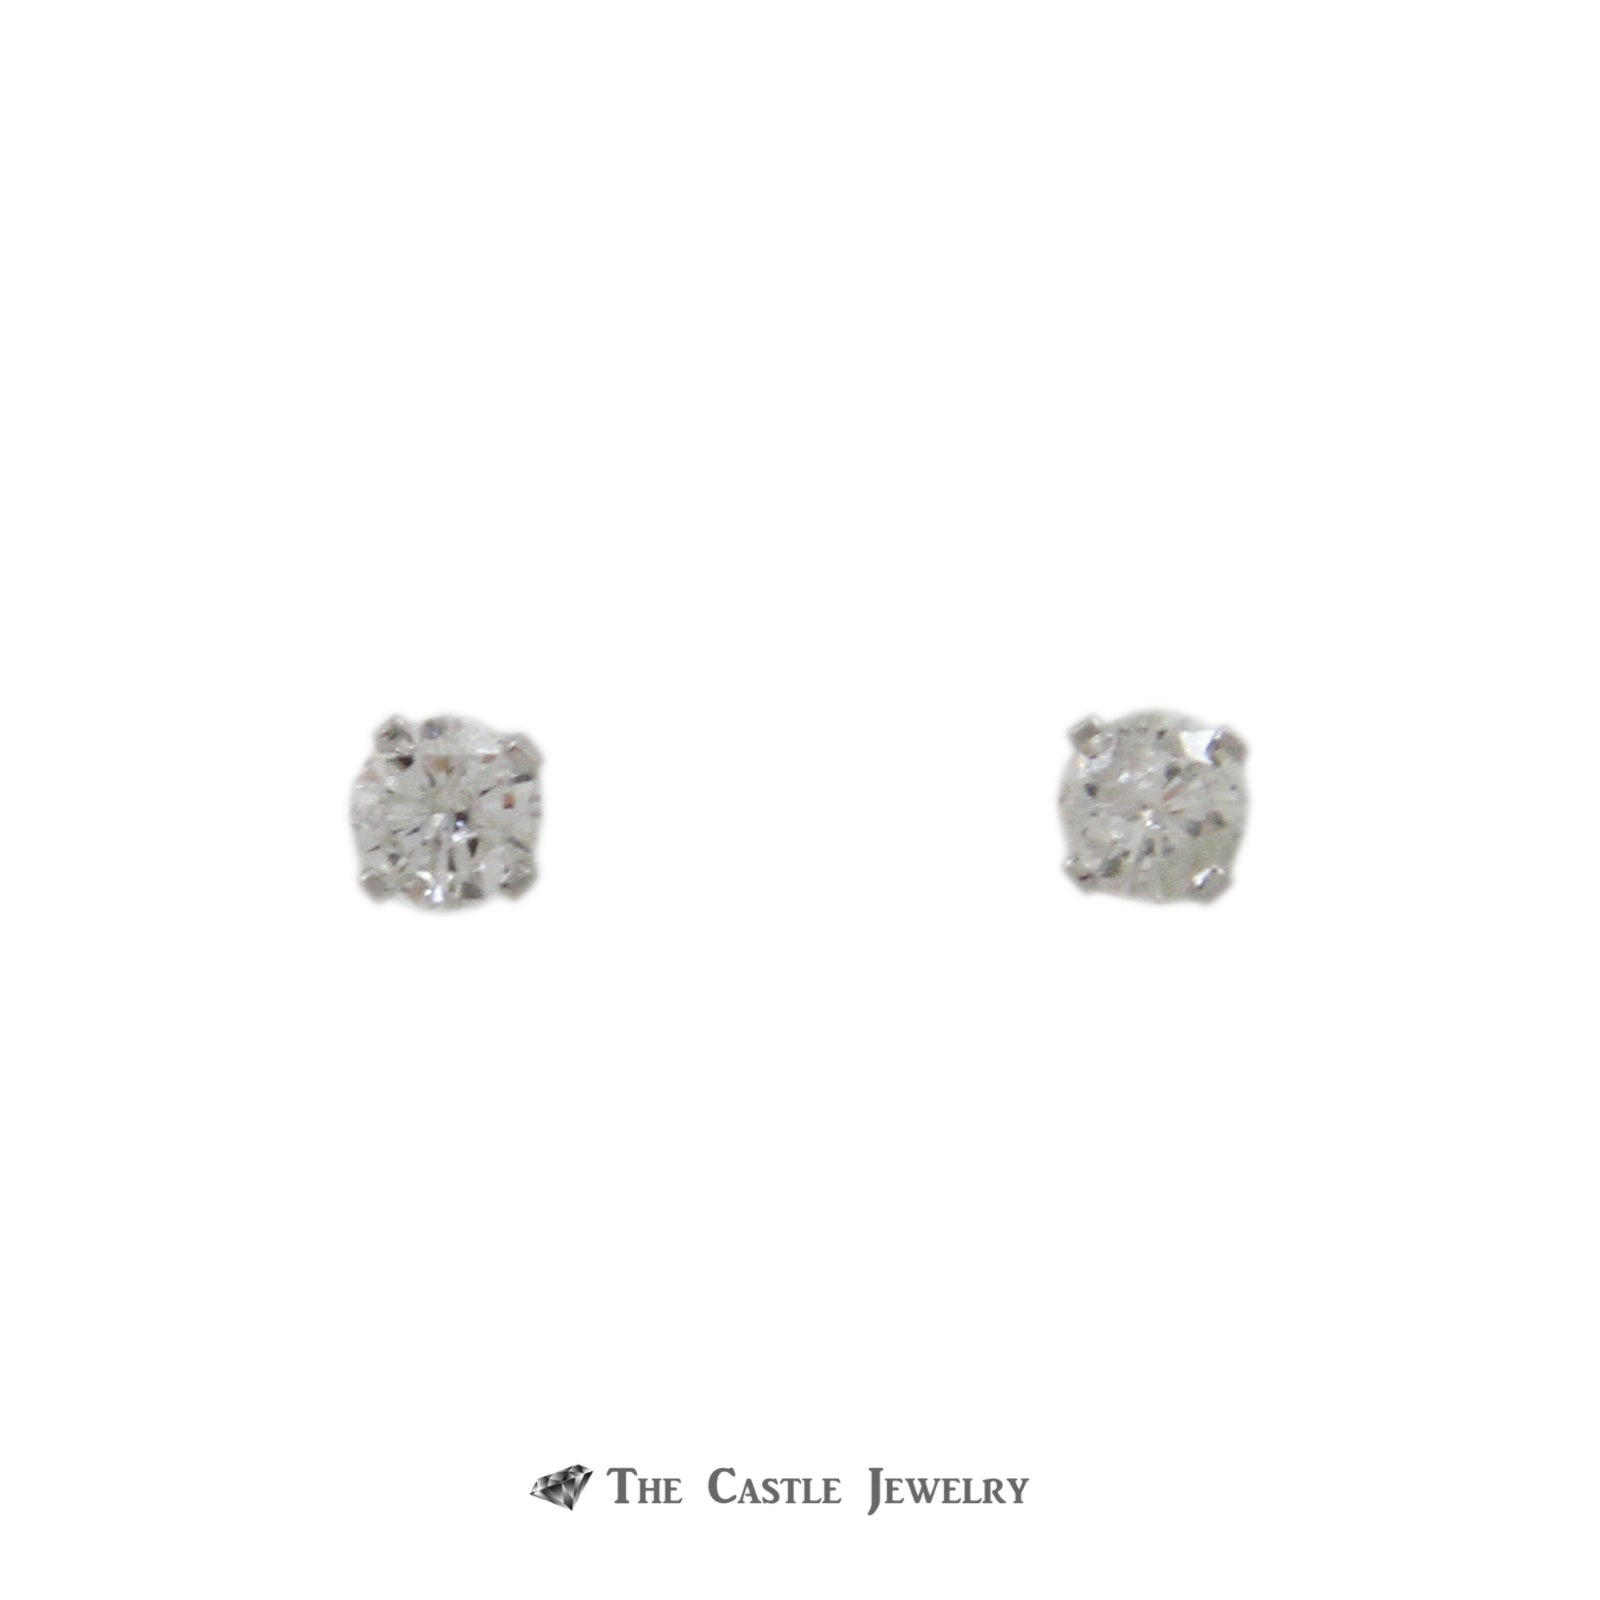 SPECIAL! Round Brilliant Cut .25cttw Diamond Stud Earrings Crafted in 14k White Gold